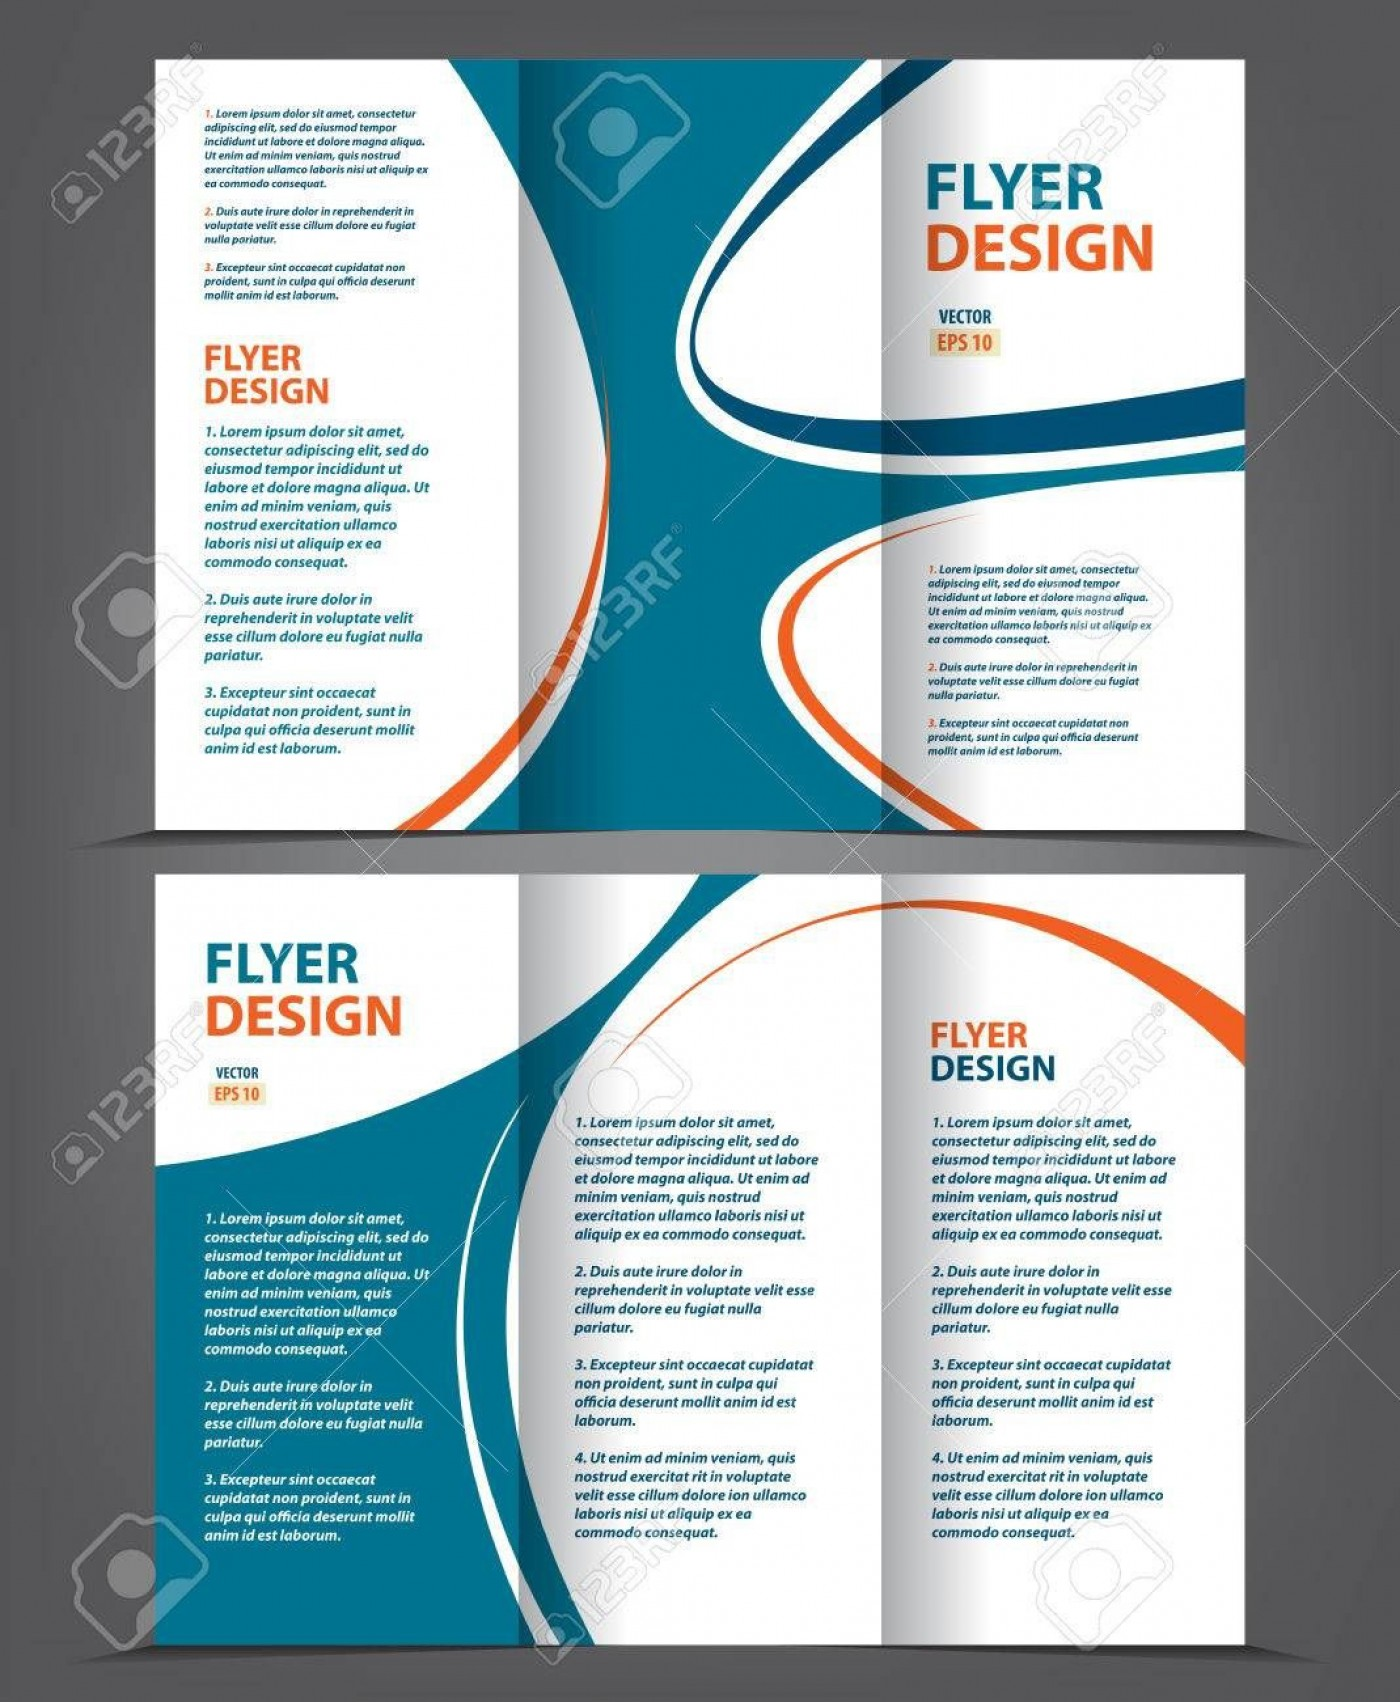 002 Frightening 3 Fold Brochure Template Highest Clarity  For Free1400